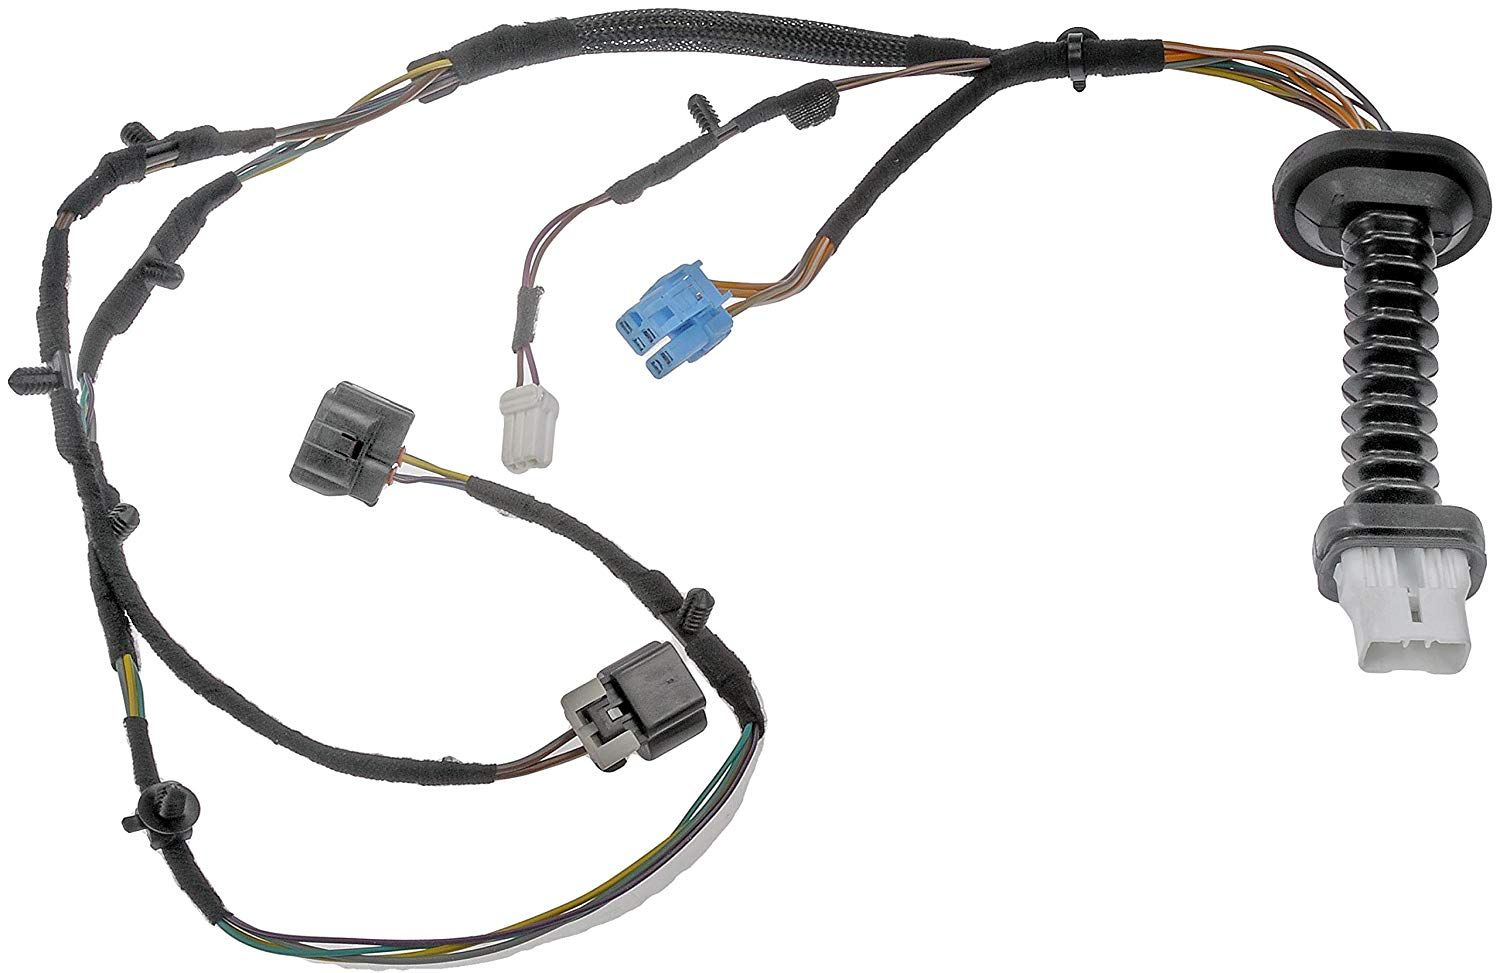 Dorman 645 506 Door Harness With Connectors Be Sure To